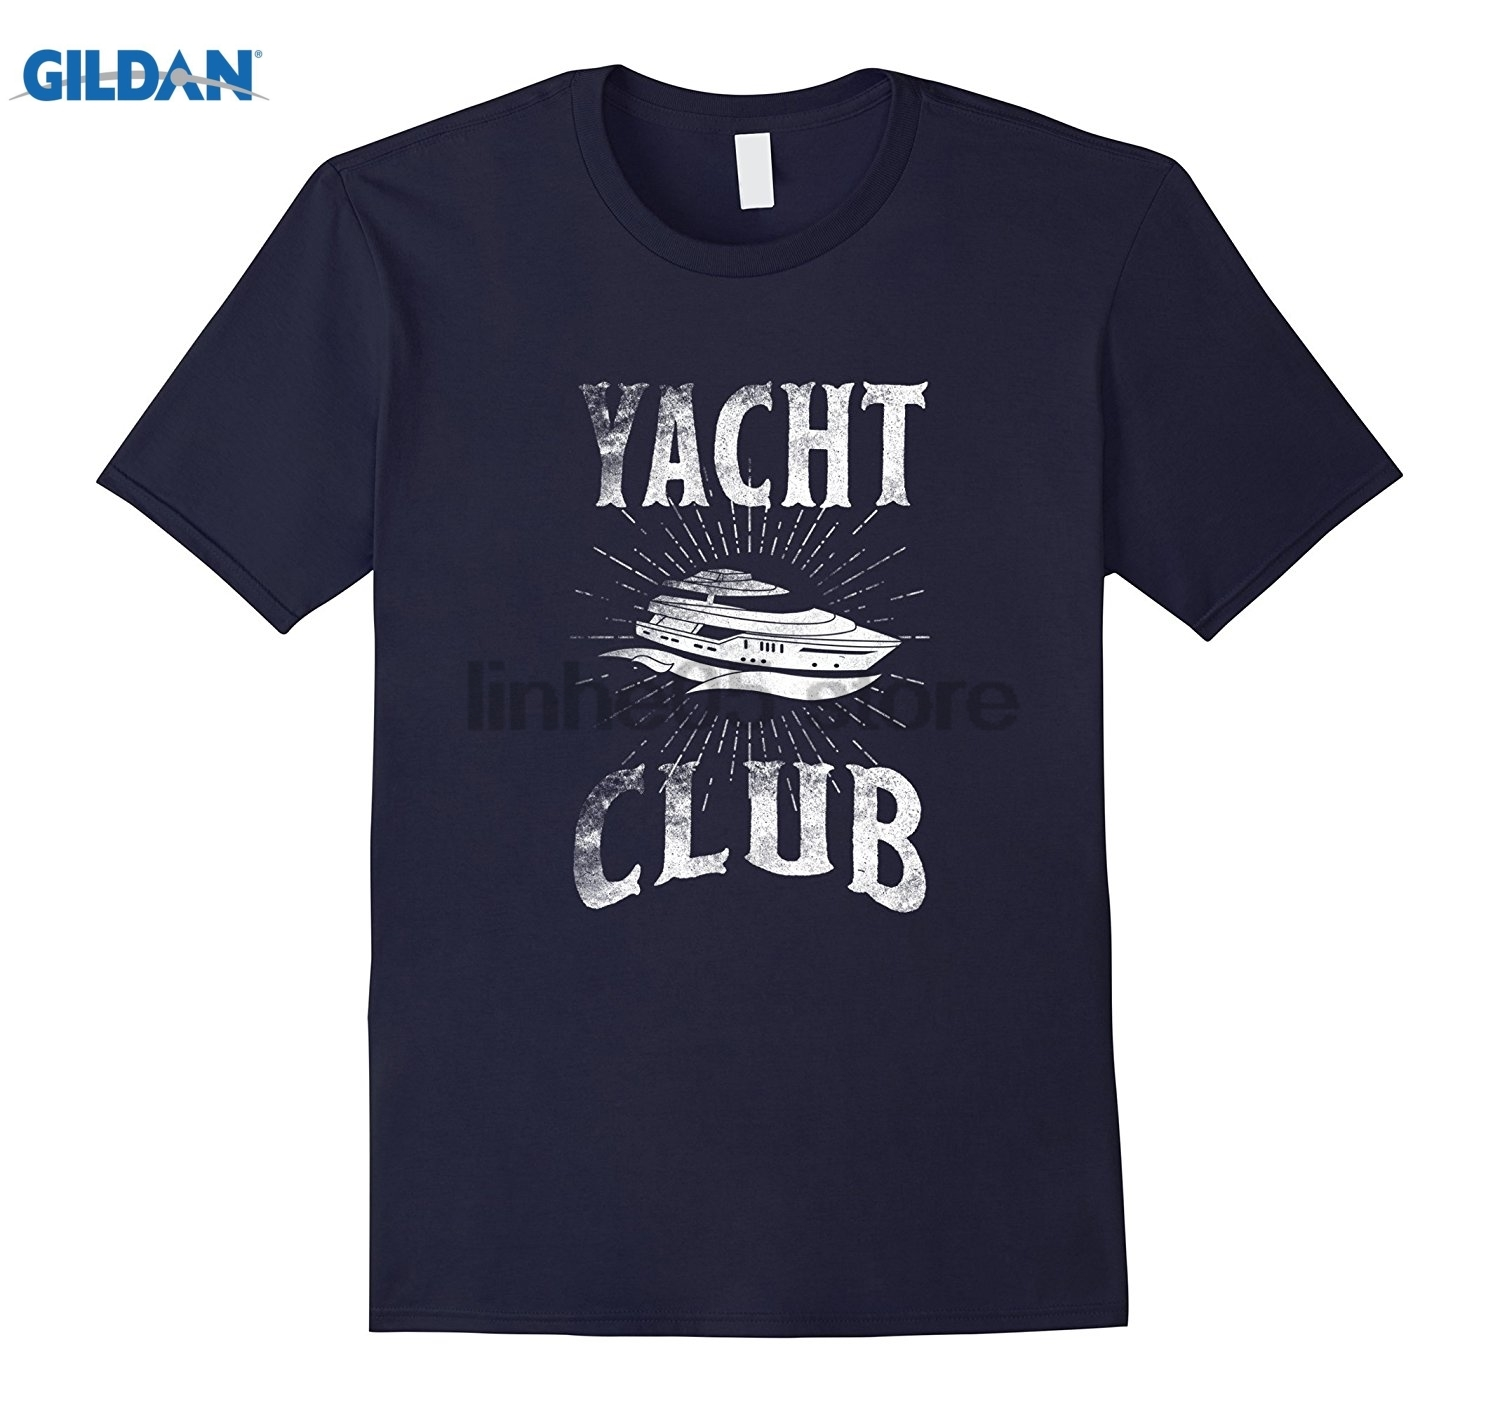 GILDAN Yacht Club Shirt Love Ship Boat Gifts USA Familiy Cruise Tee Womens T-shirt